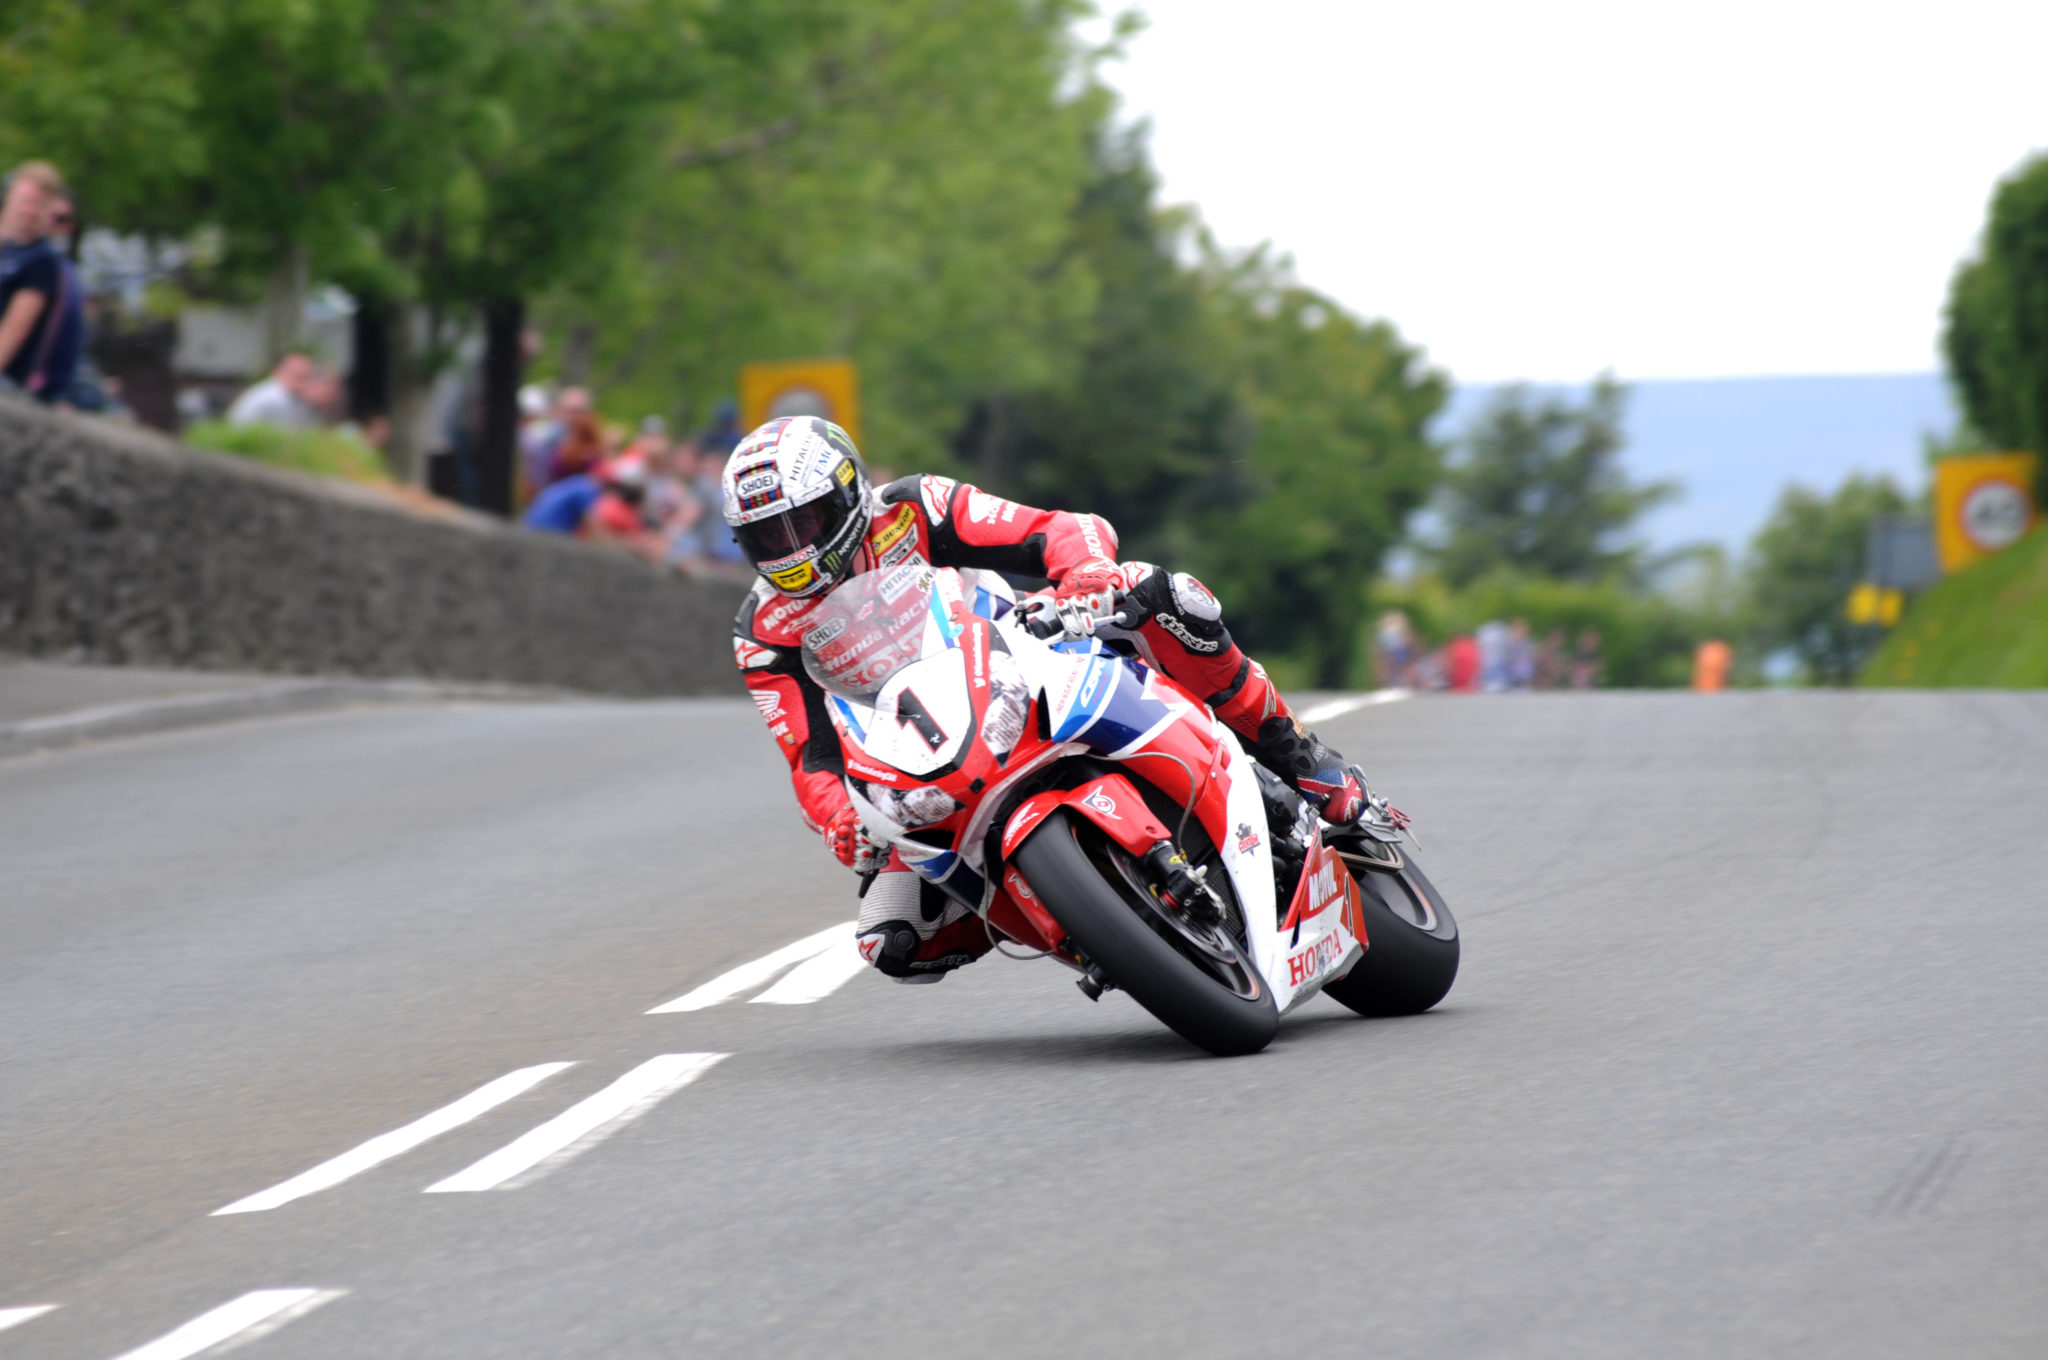 John McGuinness winning the Senior TT with Honda credit Pacemaker Press International